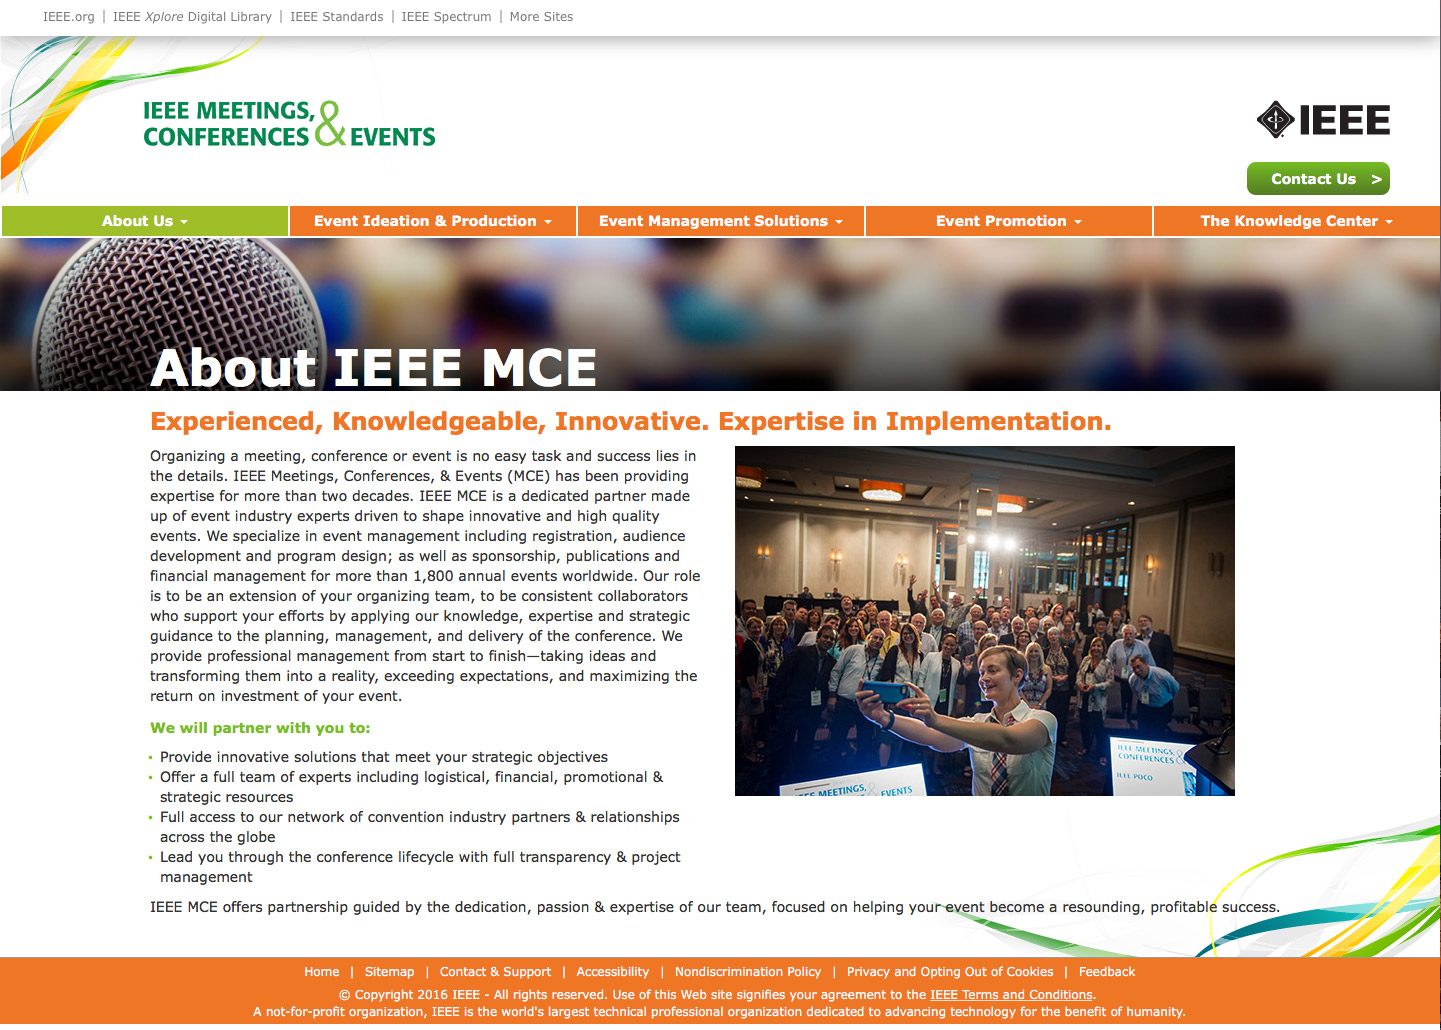 IEEE-mce-about